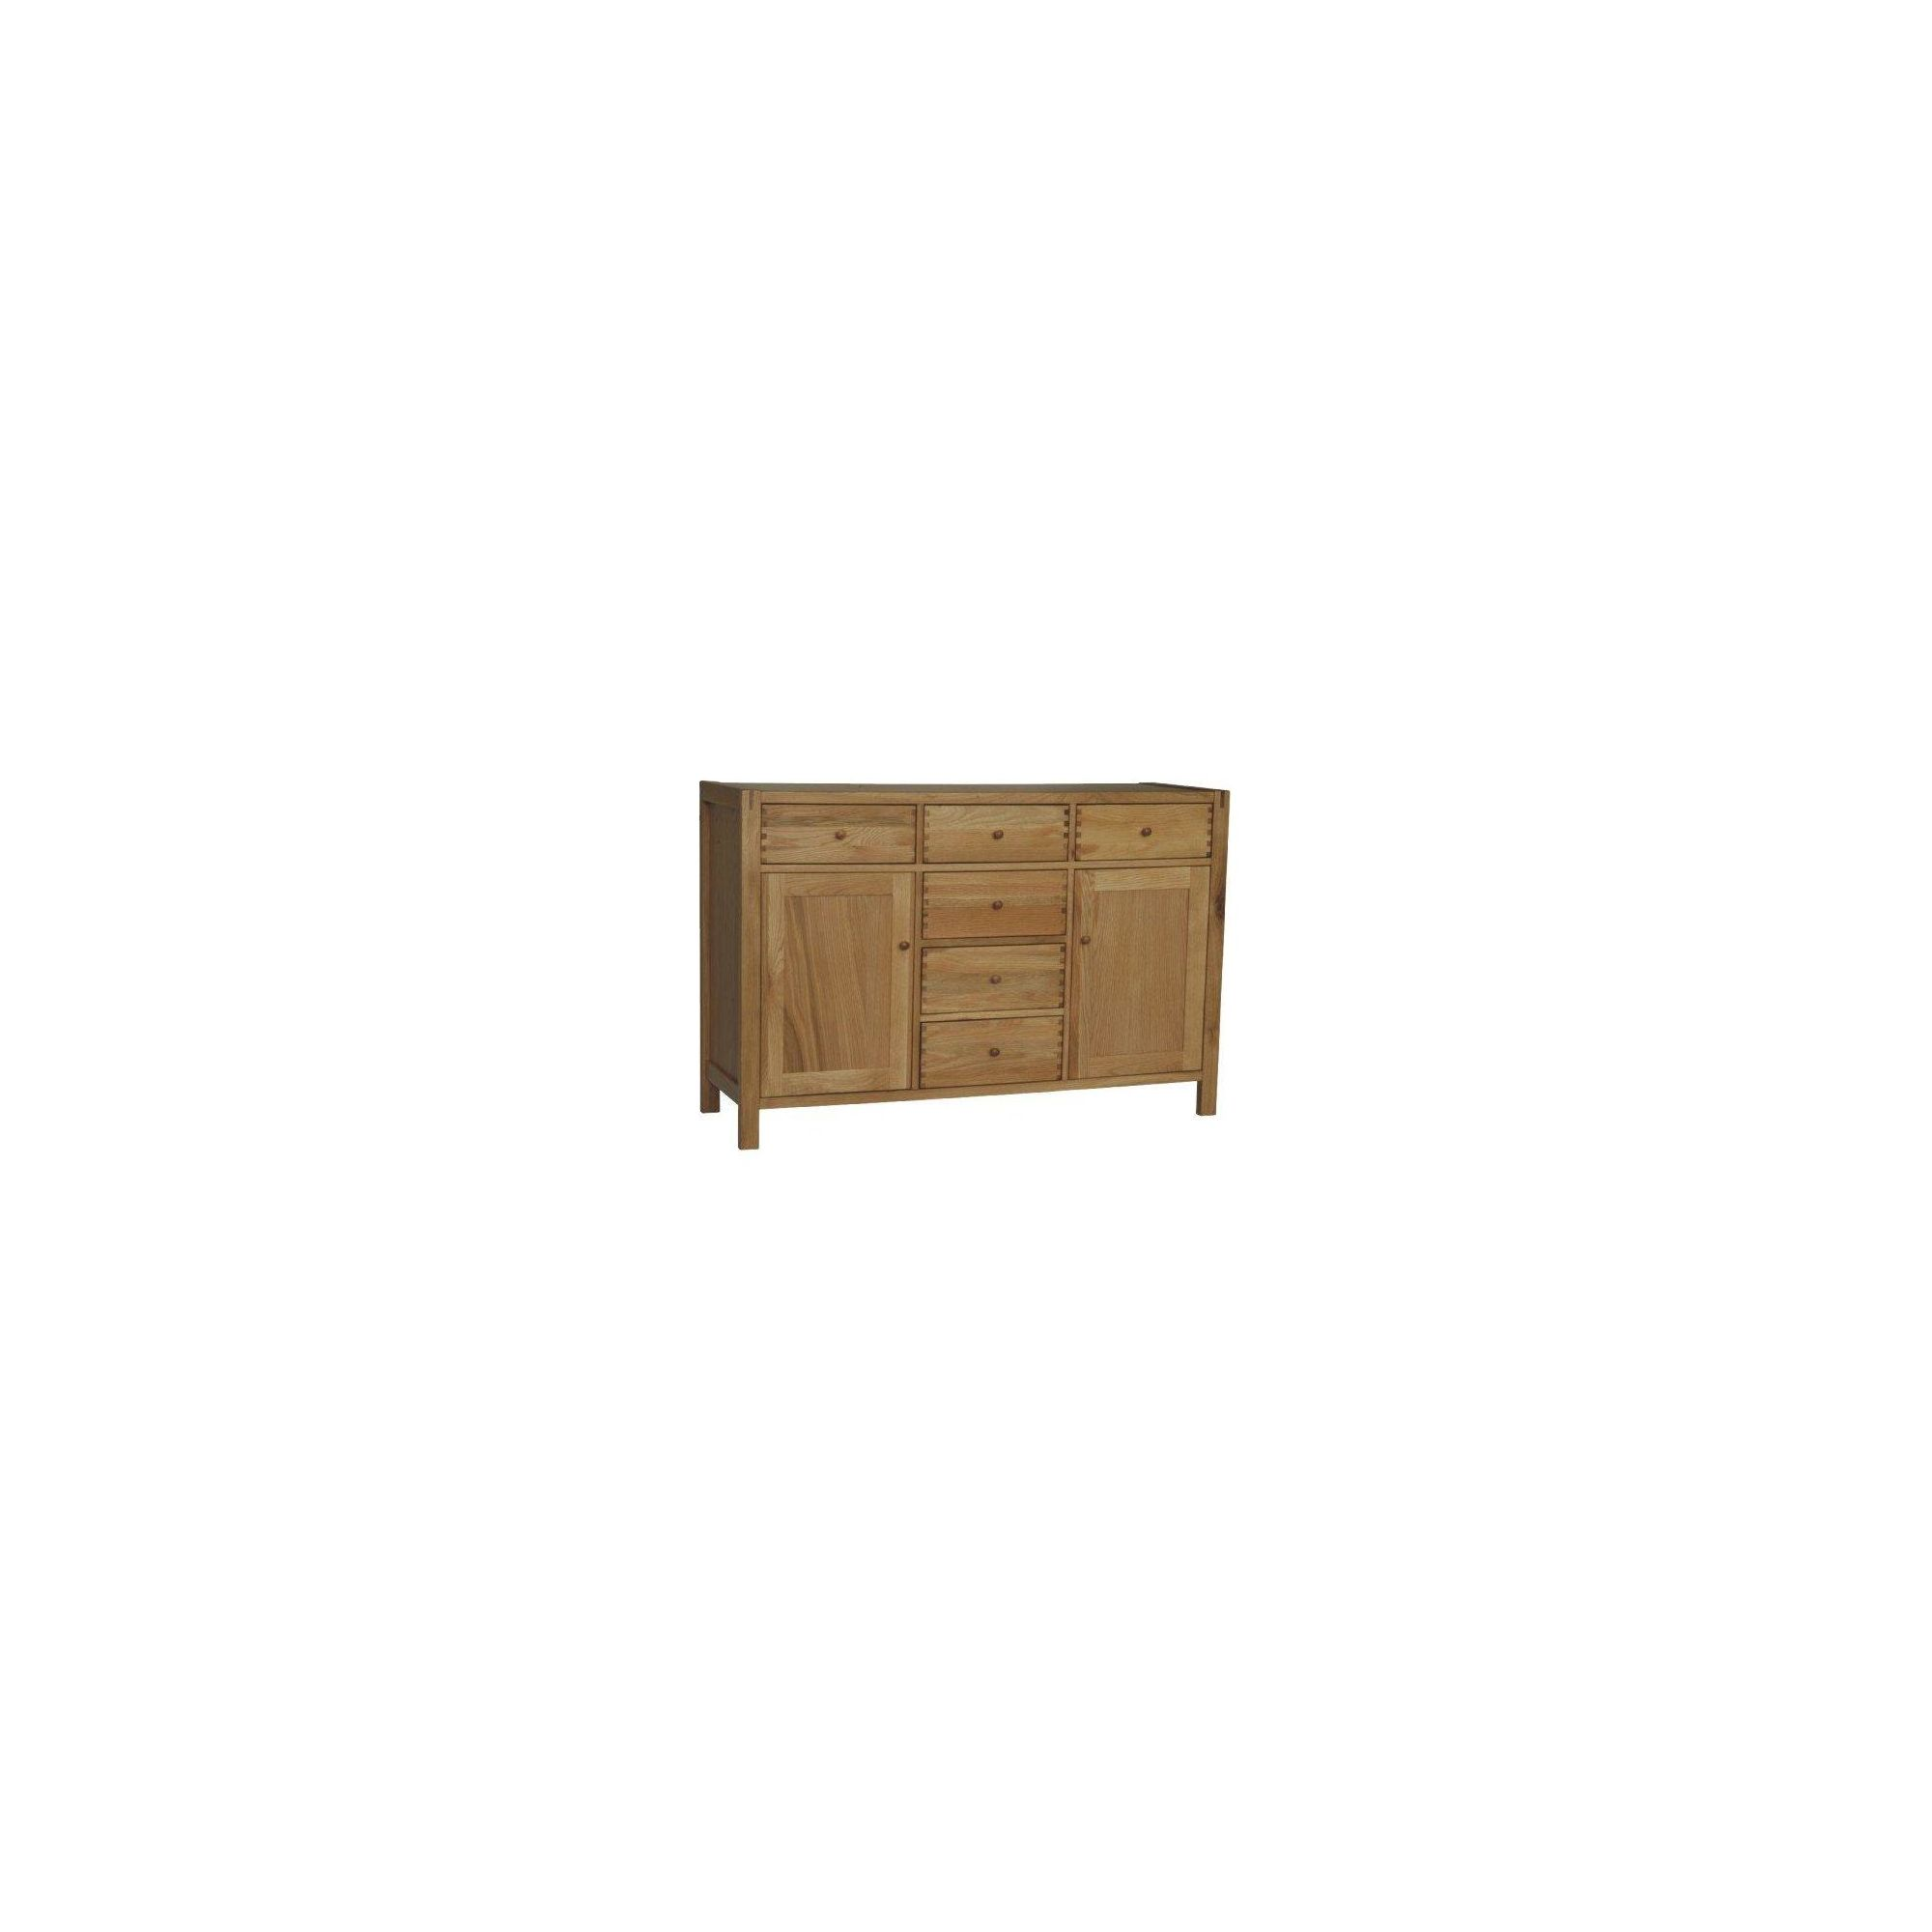 Oakinsen Canberra Sideboard at Tesco Direct